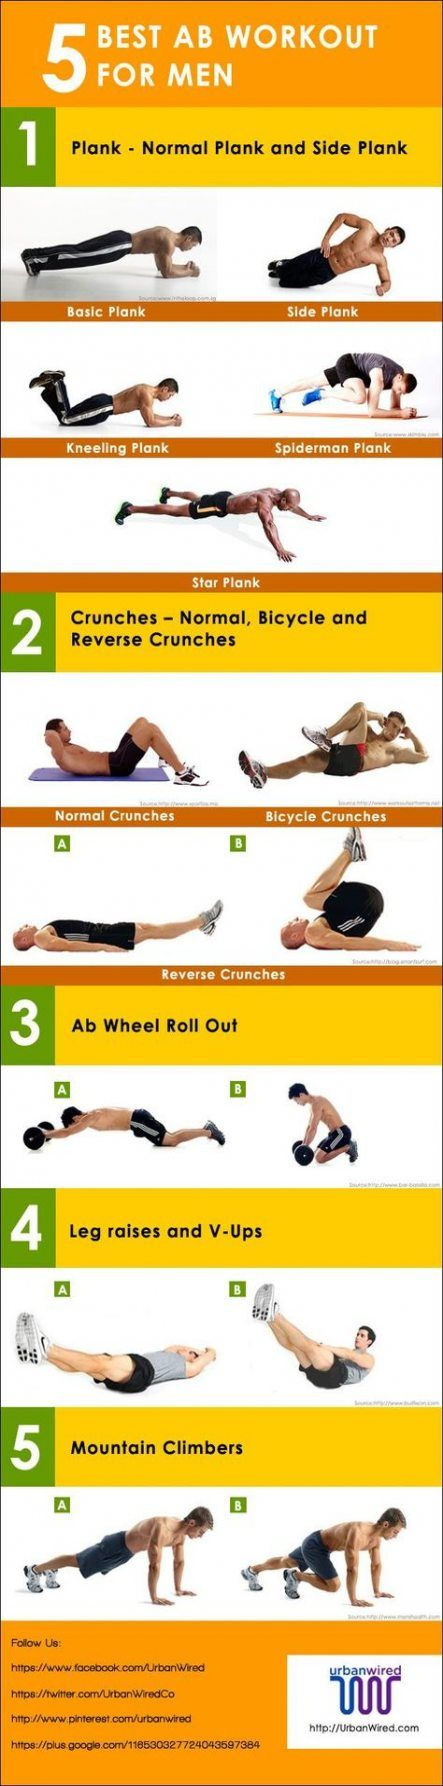 Fitness Motivacin Body Abs Six Packs 37+ Best Ideas #fitness